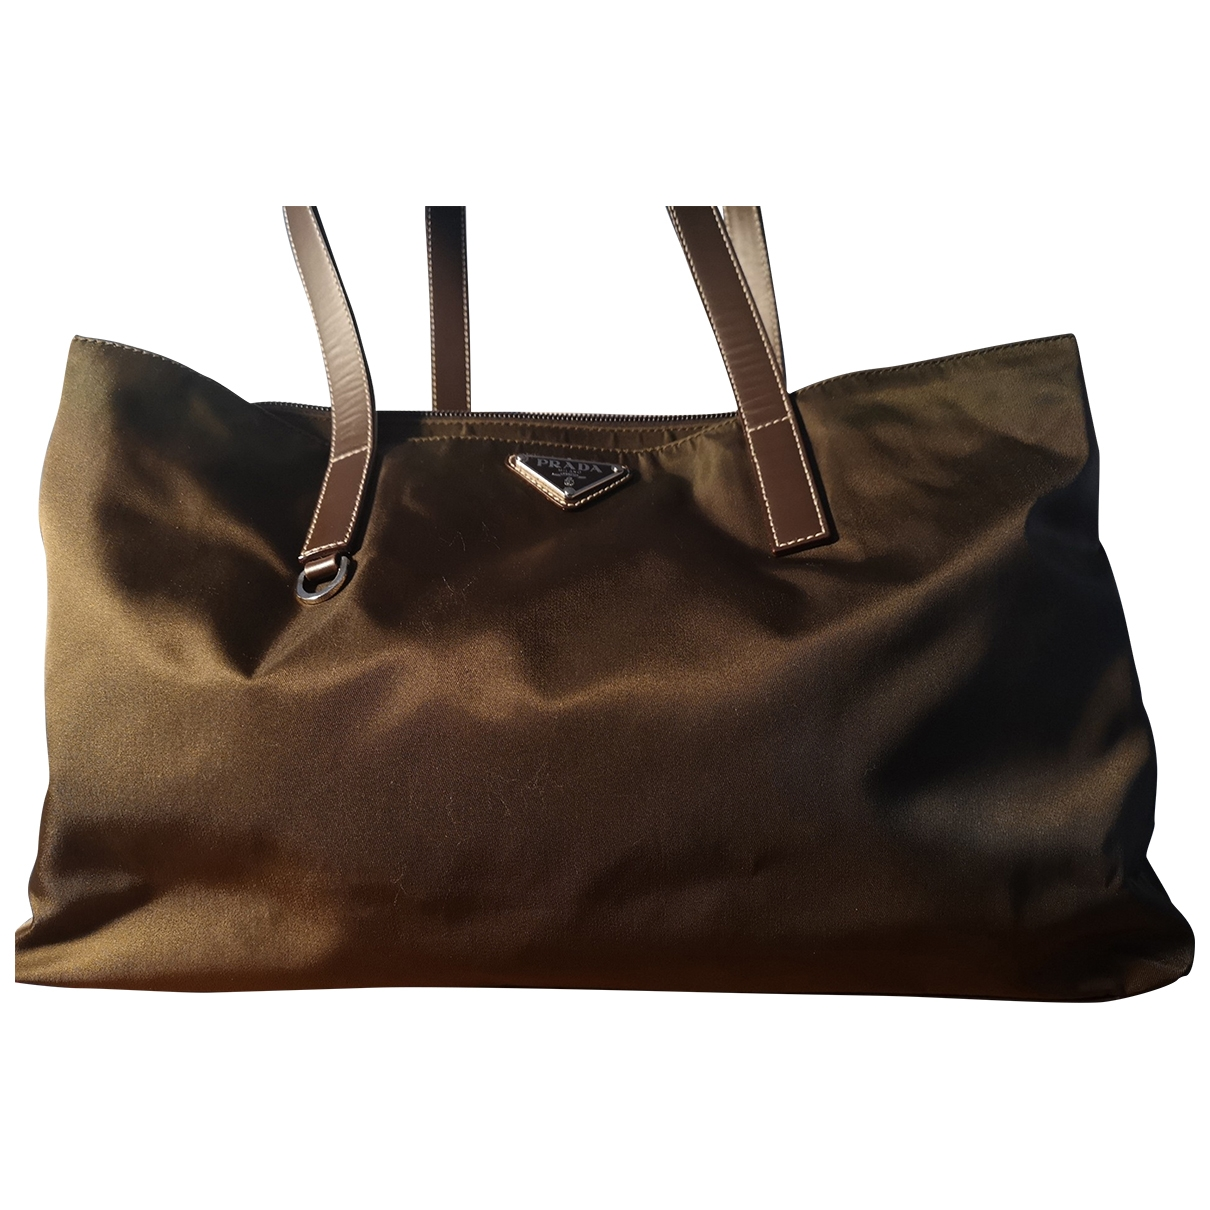 Prada \N Cloth handbag for Women \N